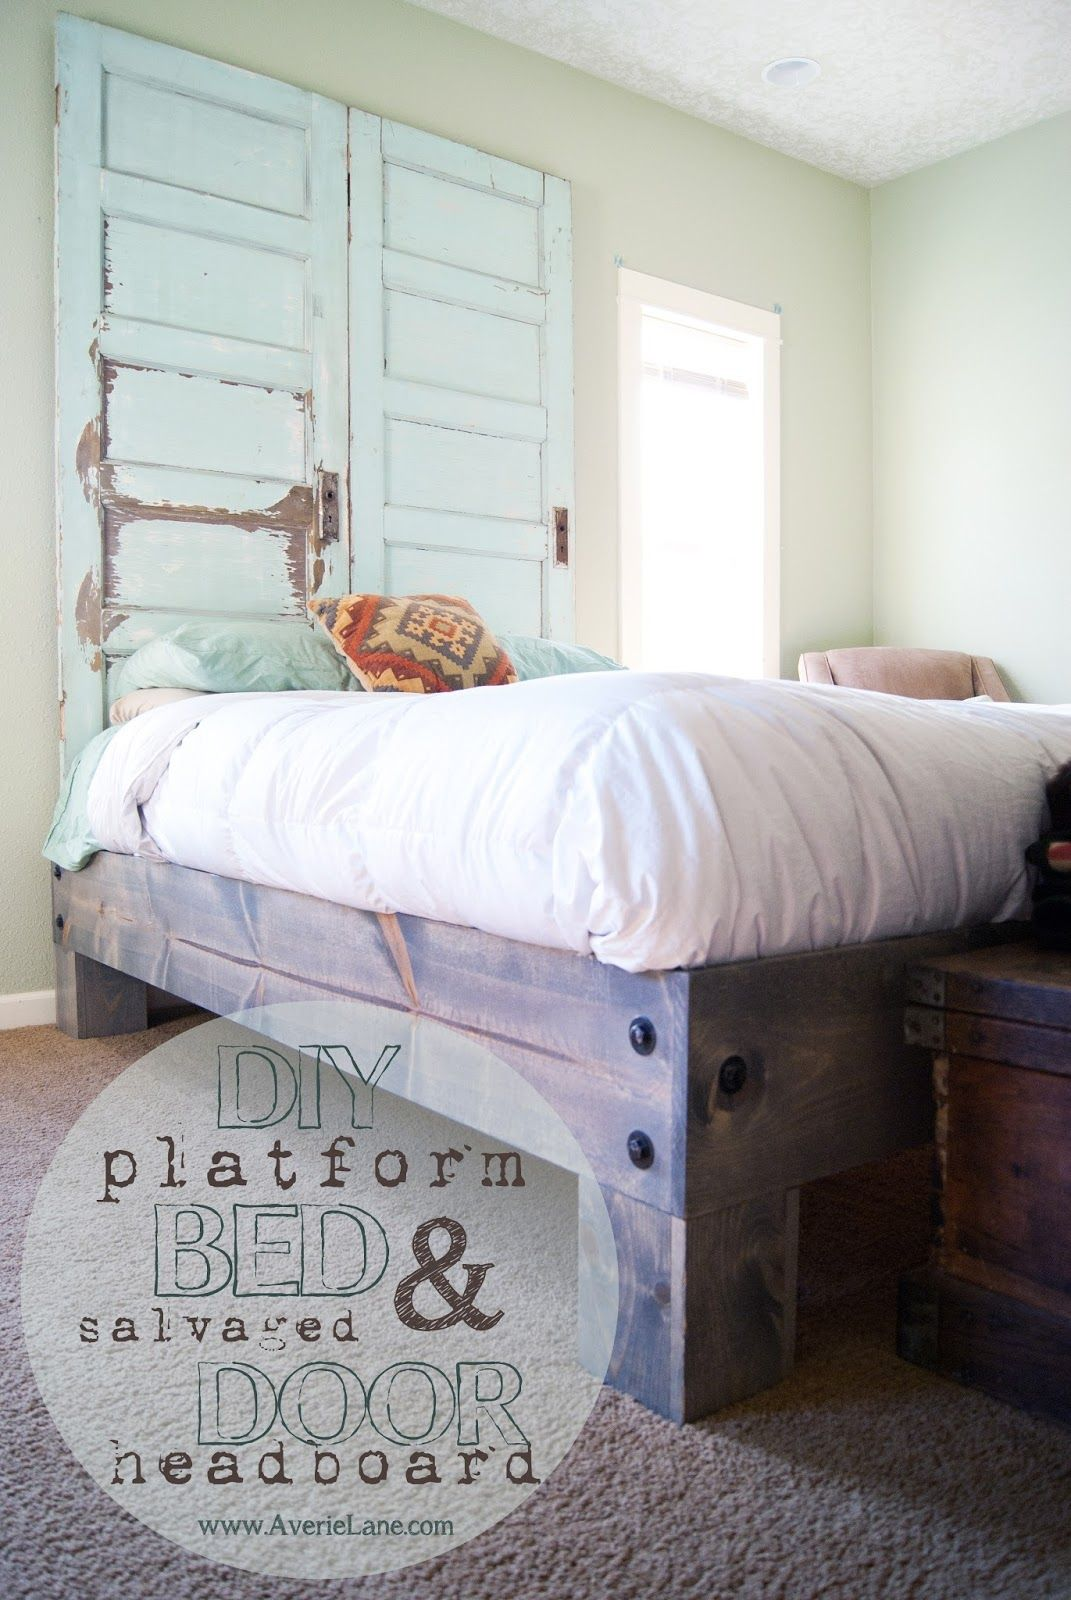 Diy Platform Bed Salvaged Door Headboard Part One Diy